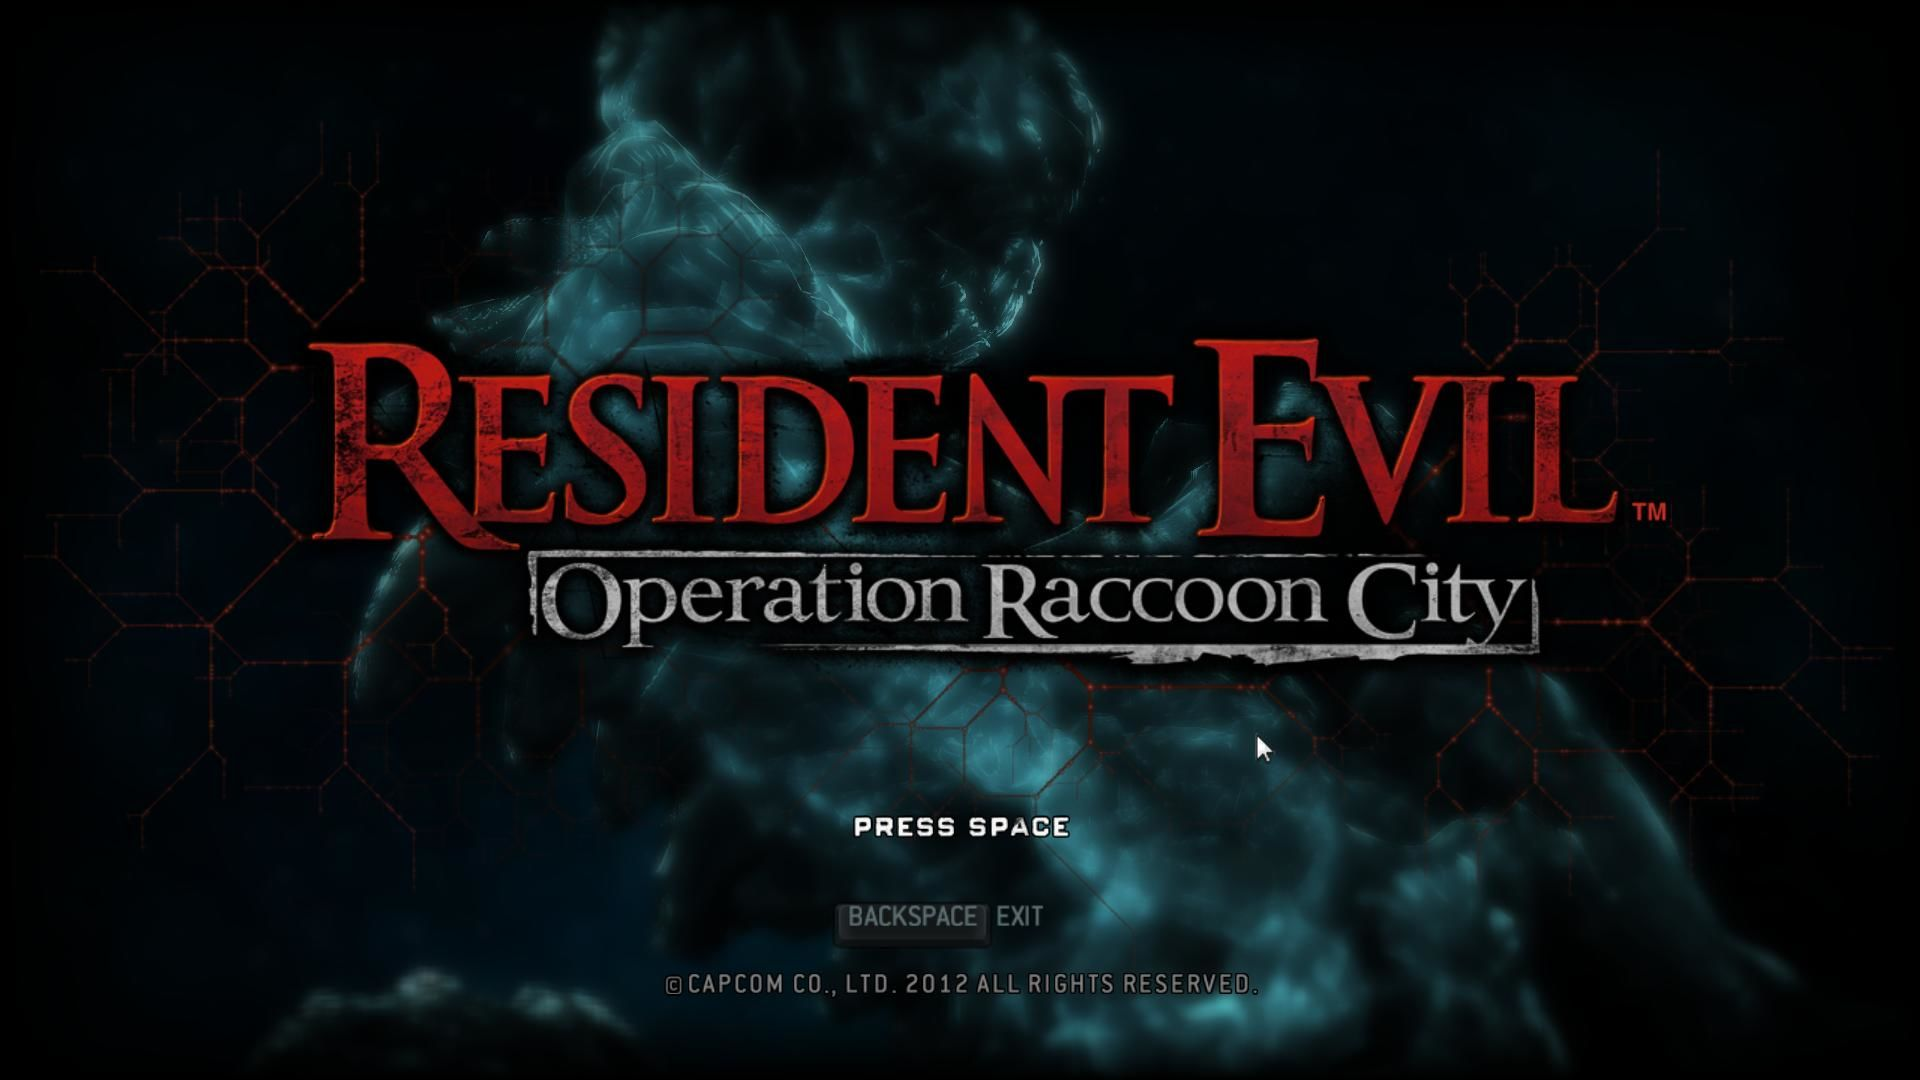 Resident Evil: Operation Raccoon City Windows Start screen.